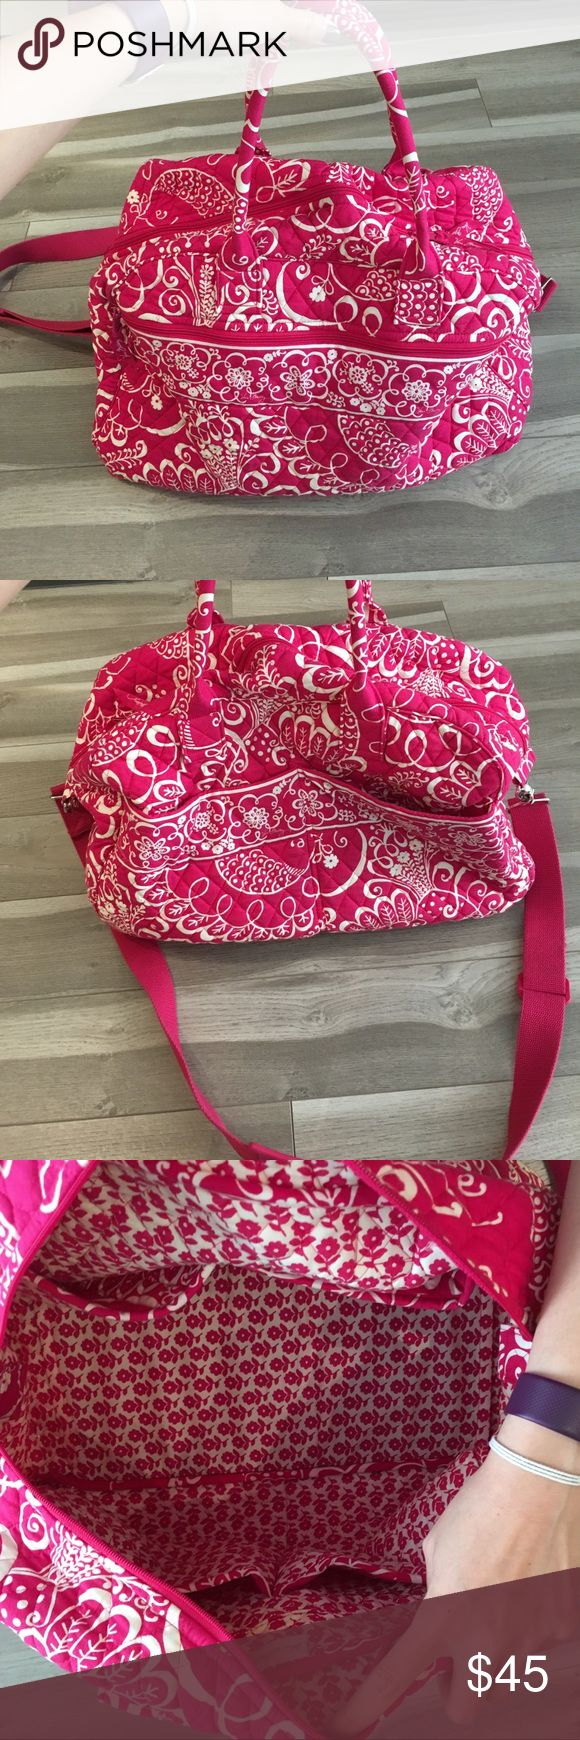 Vera Bradley Weekender Bag Vera Bradley weekender bag with removable shoulder strap. Roomy with four interior pockets and external pockets (one zipped, two open). Vera Bradley Bags Travel Bags